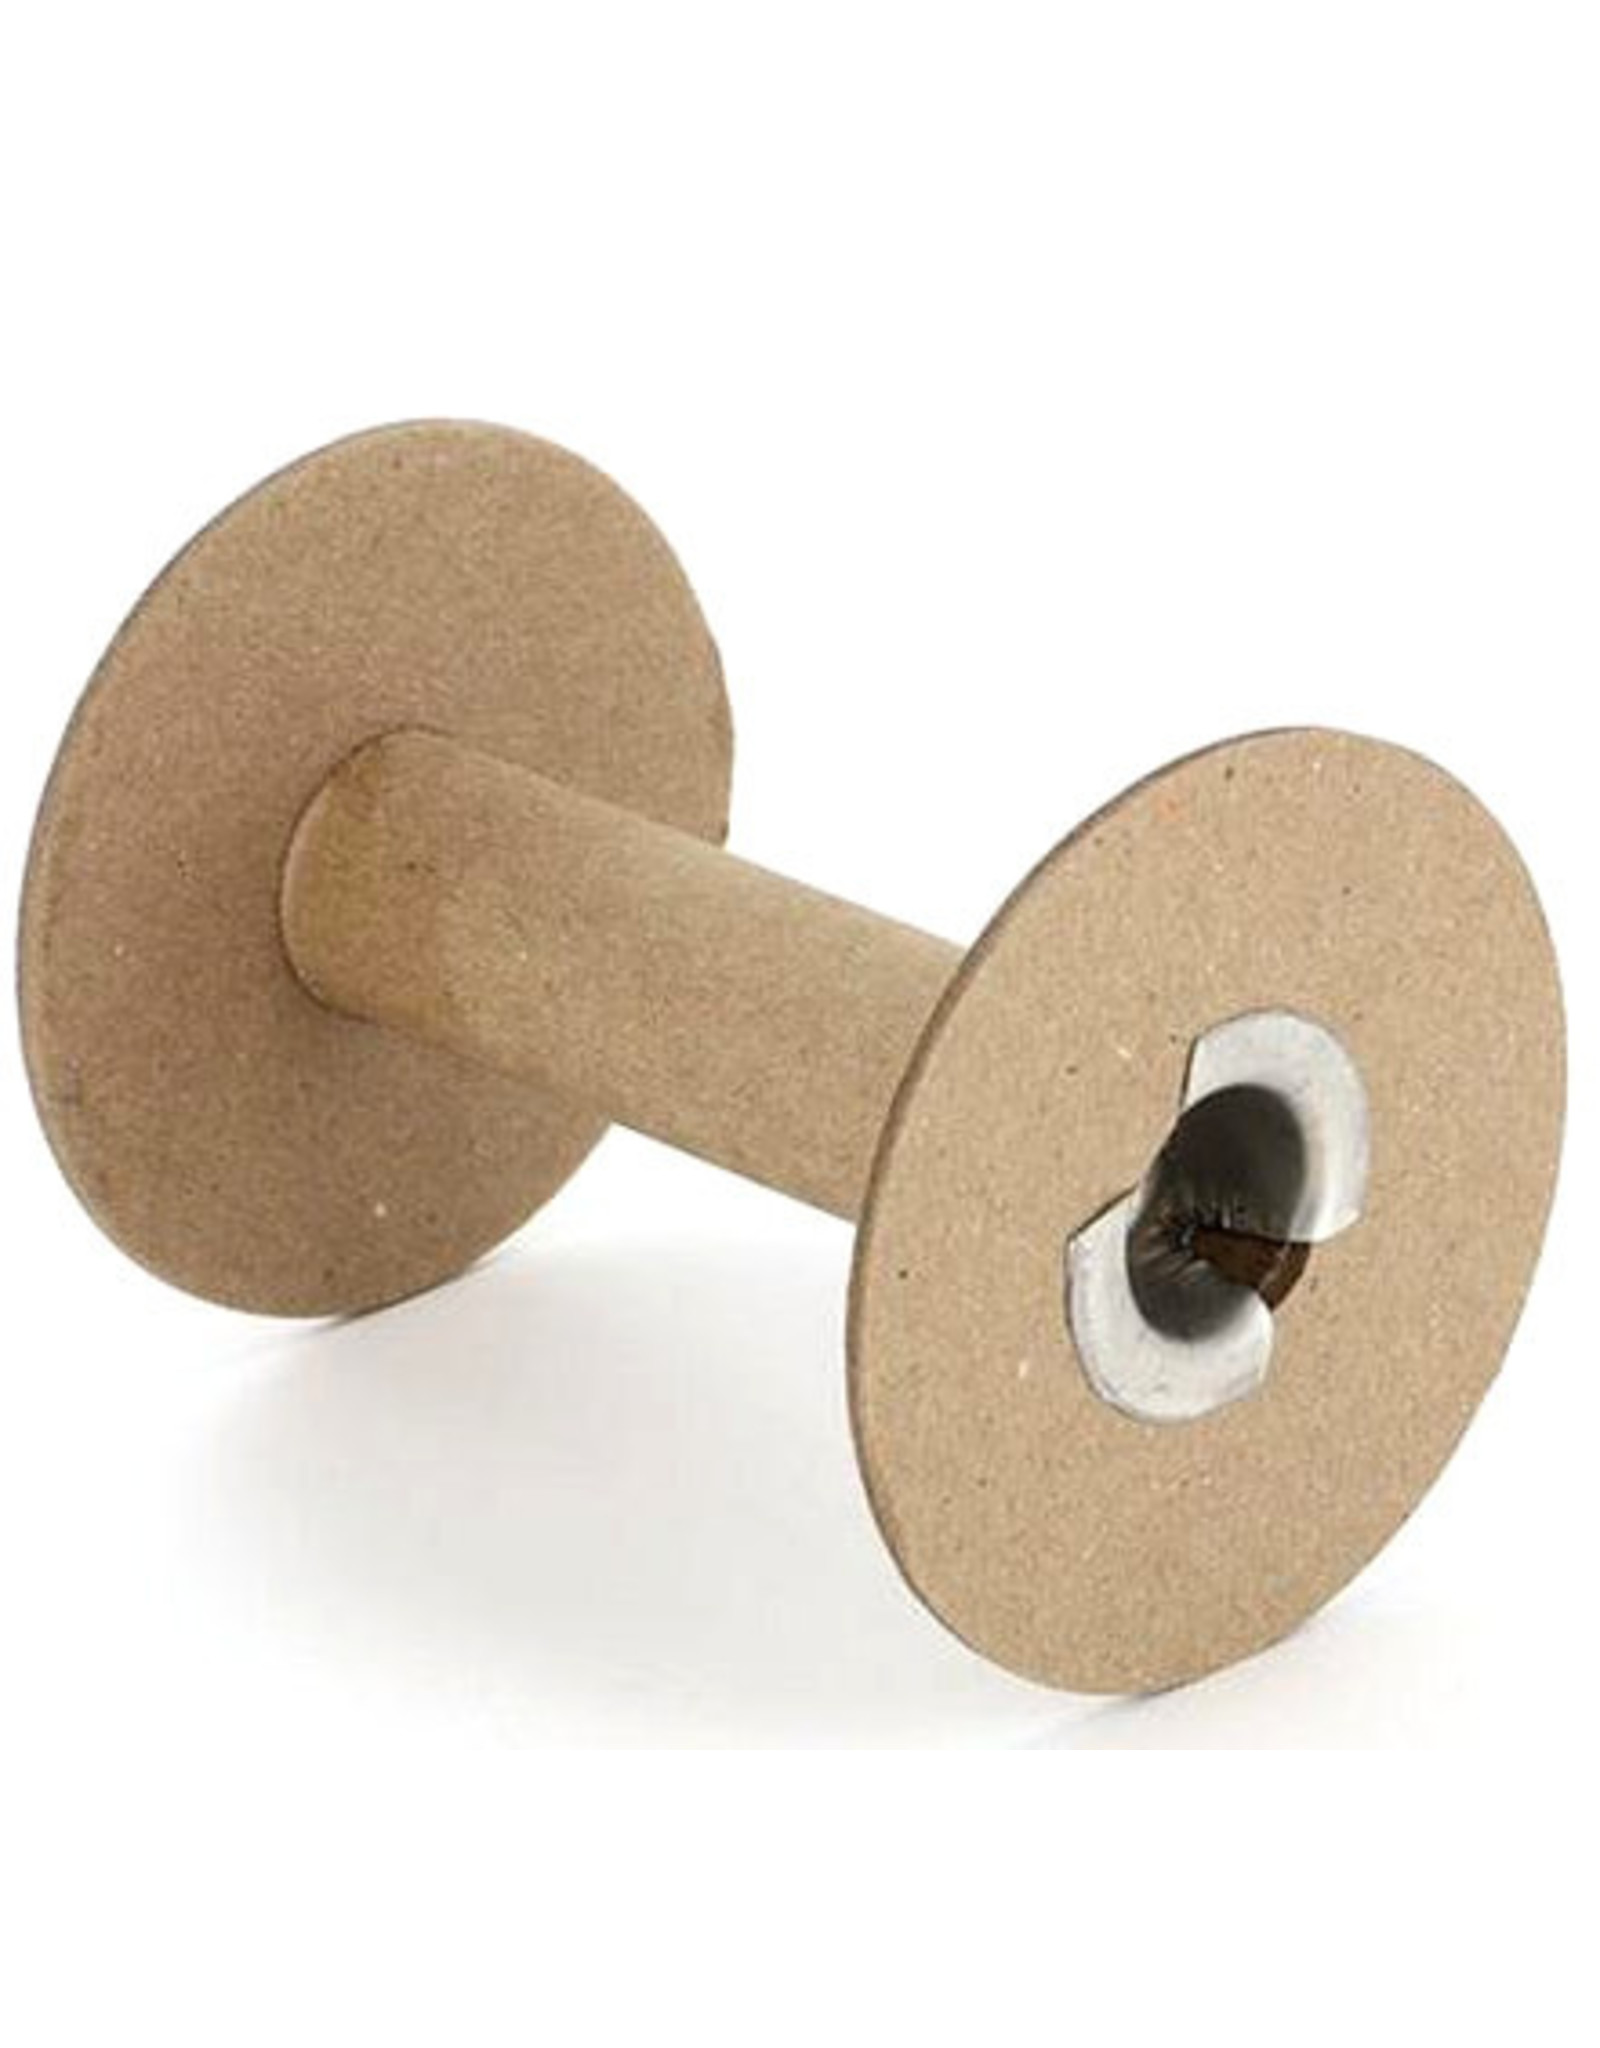 Schacht Spindle Company Schacht Cardboard Spool